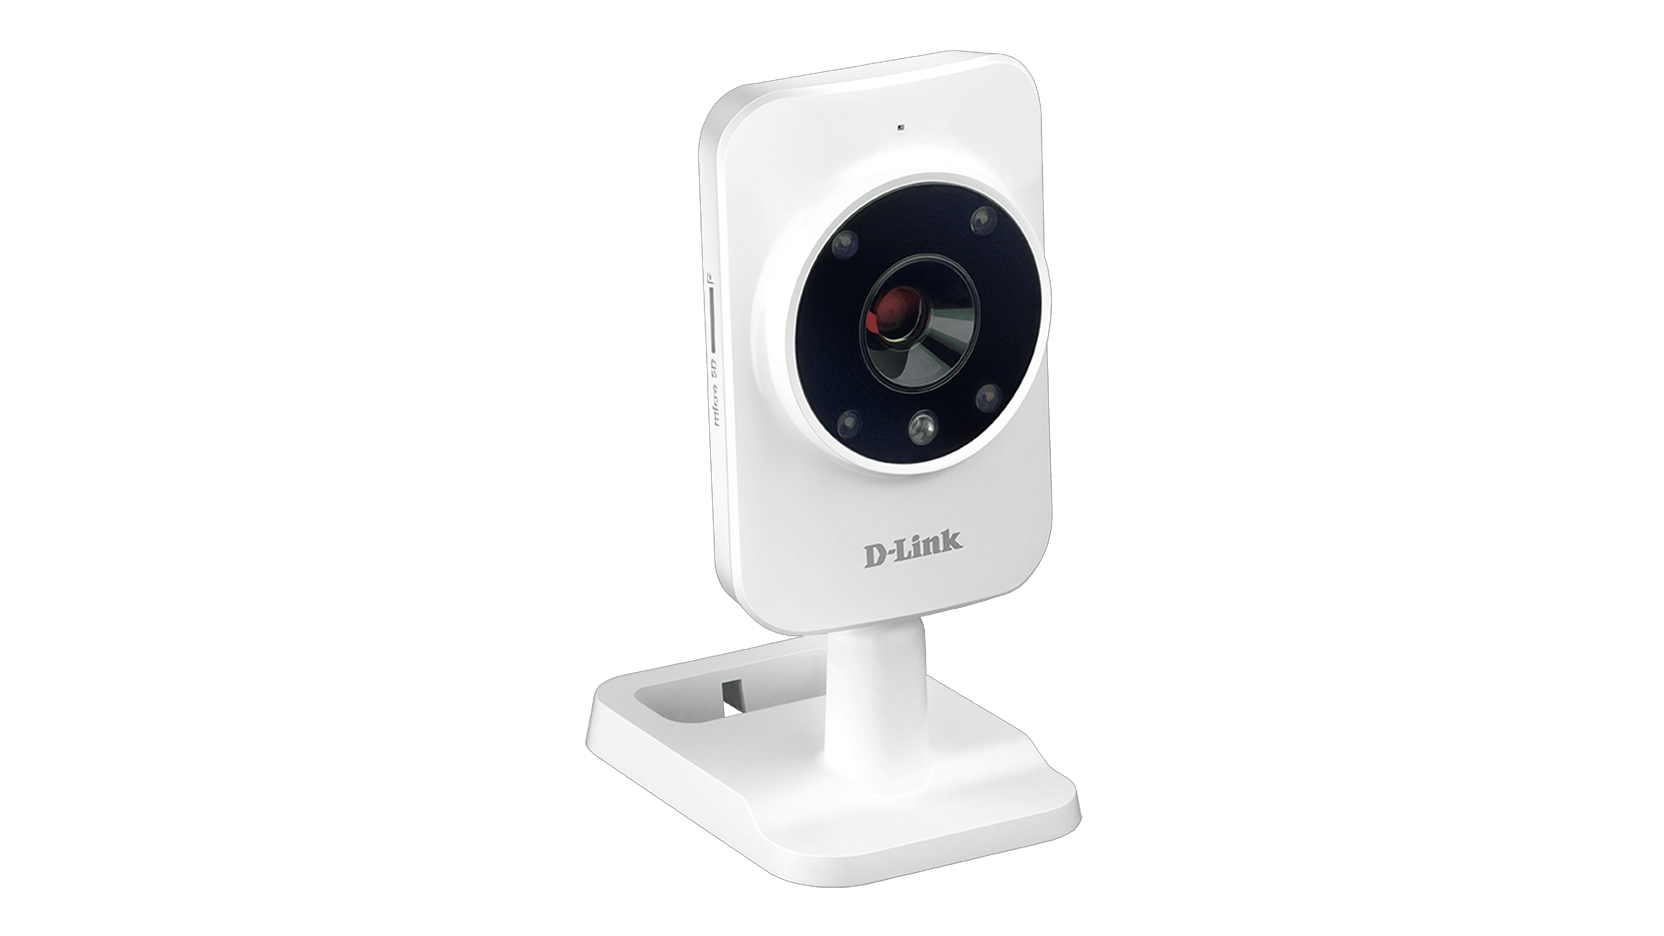 D-Link DCS-935LH IP security camera Indoor Cube White security camera